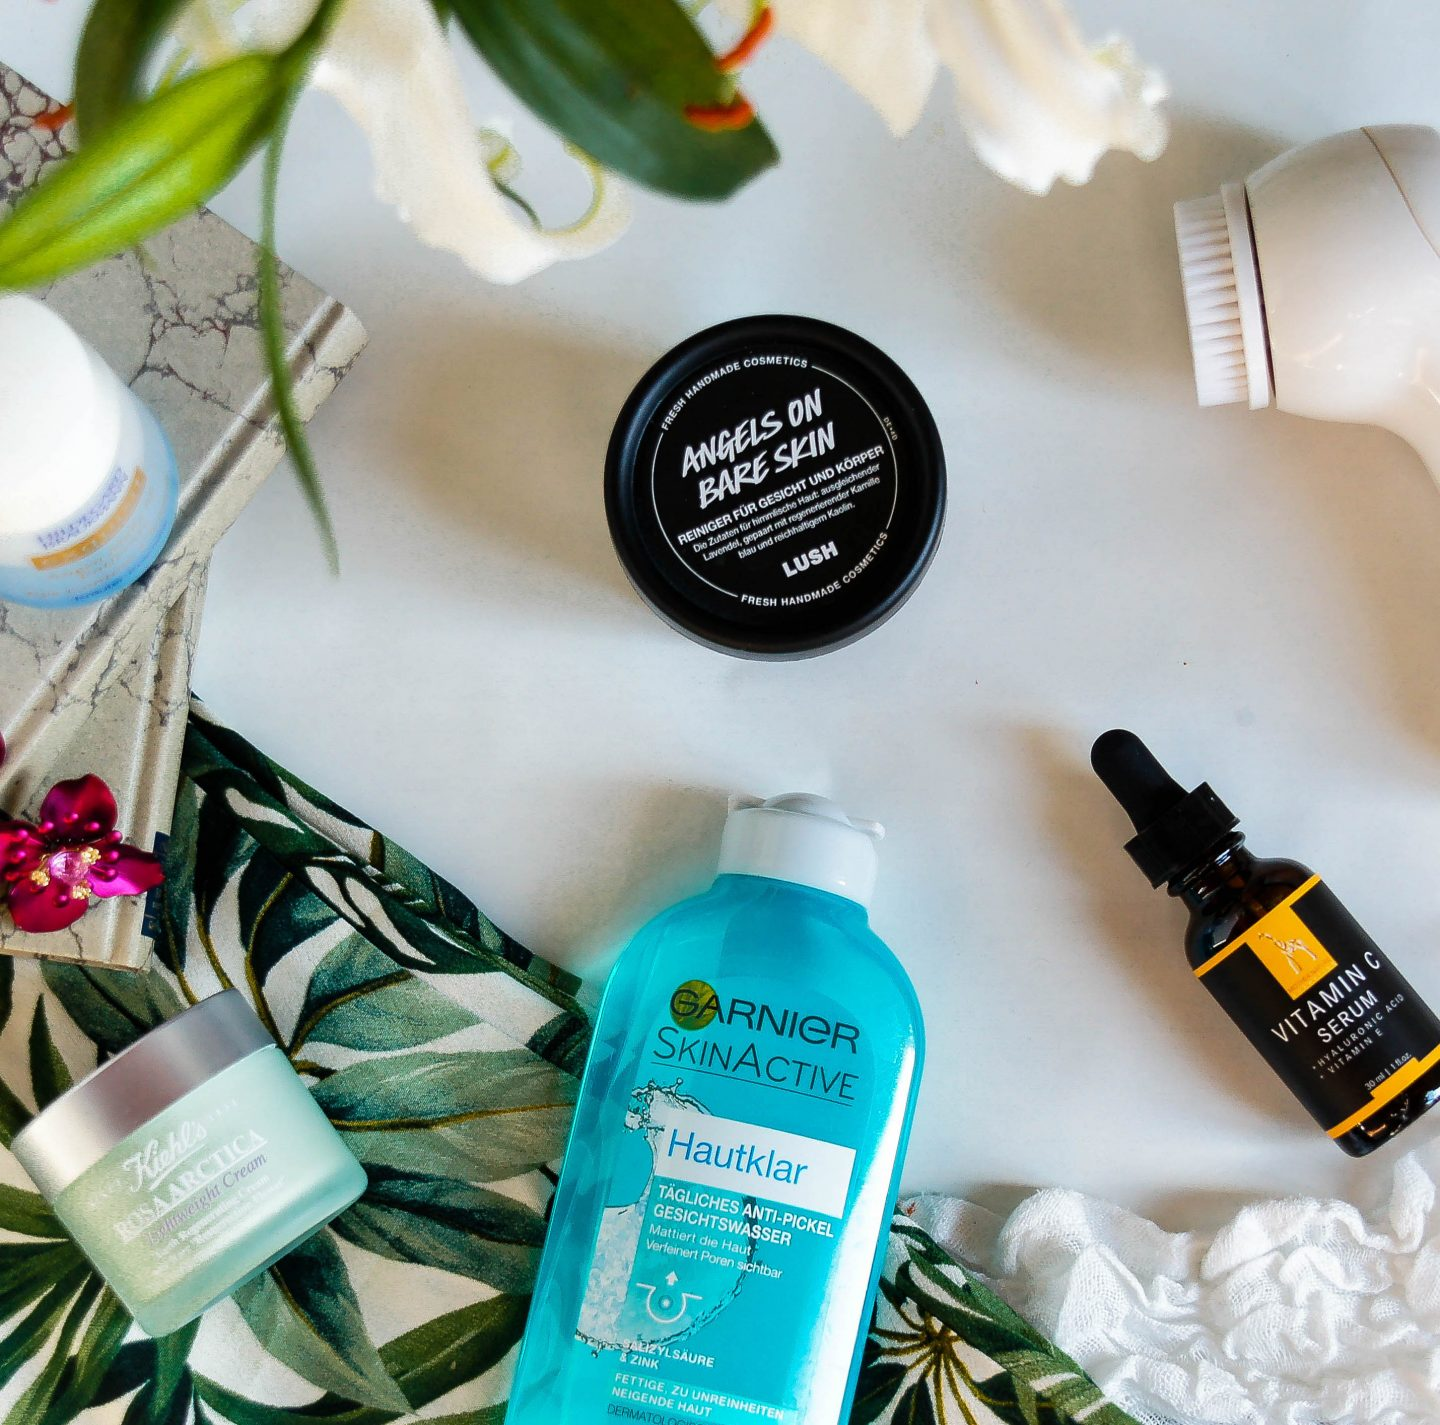 Daily Skincare Routine: 5 Steps for a perfect start to the day